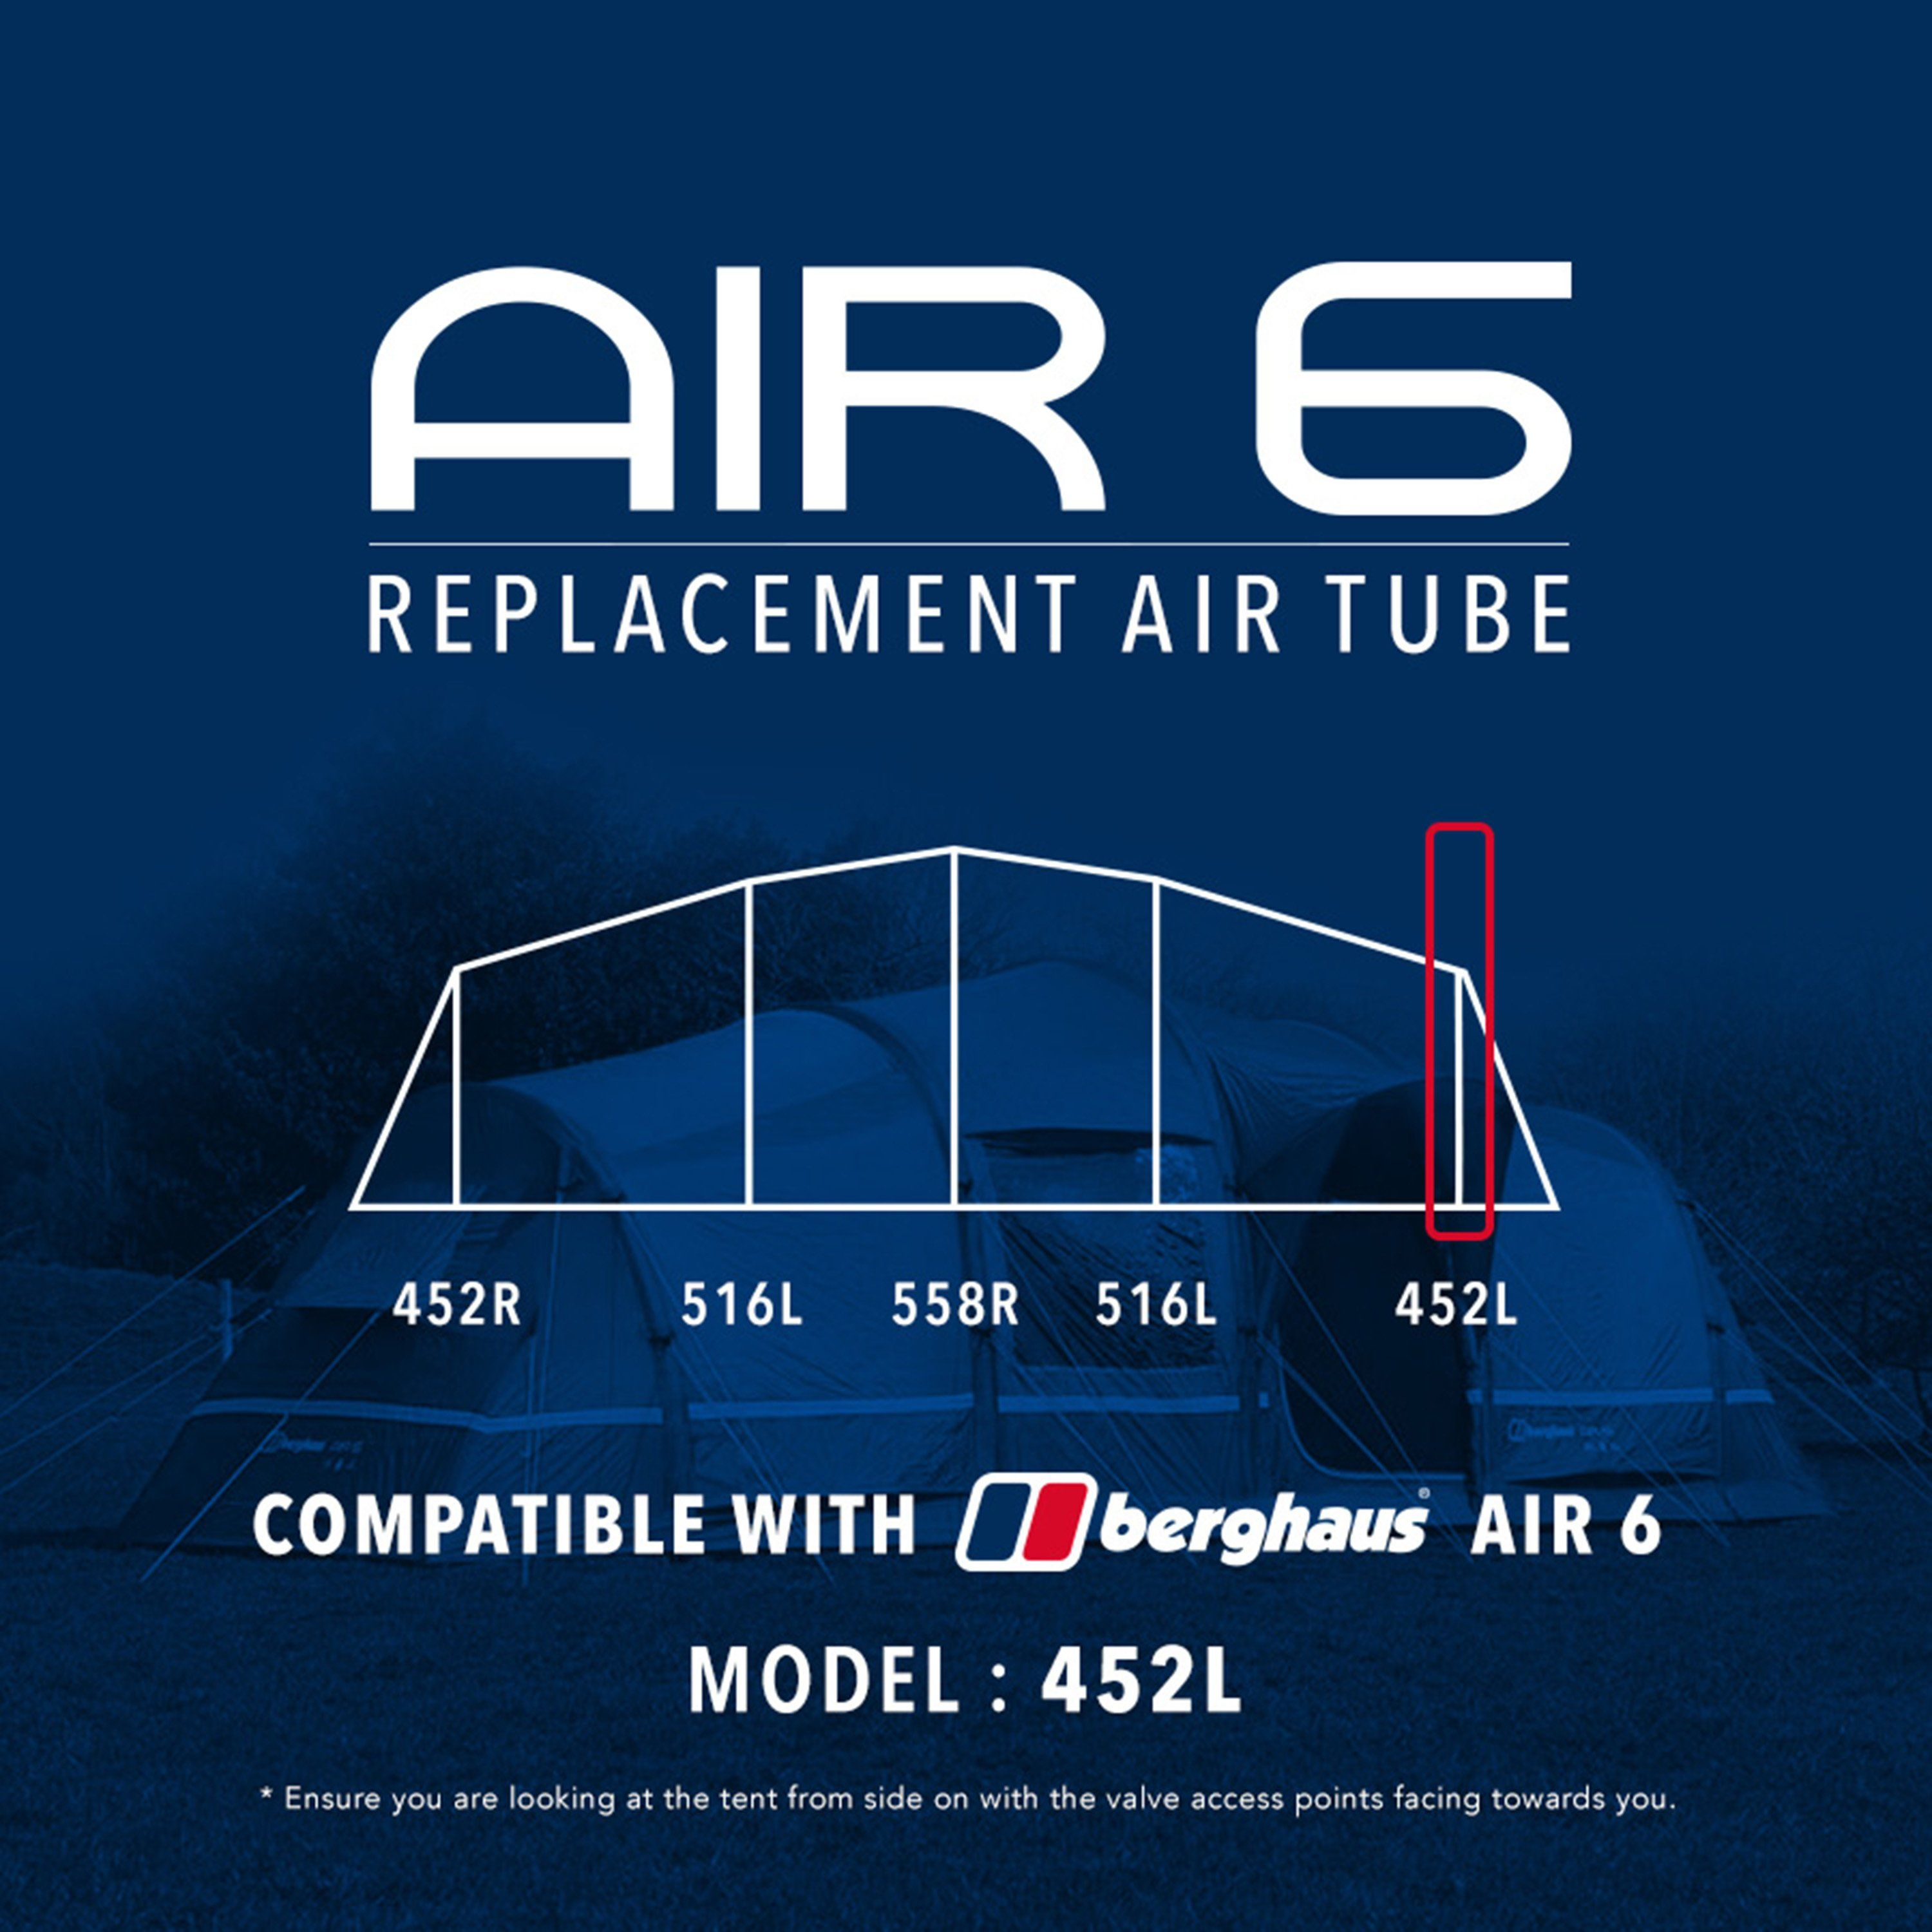 EUROHIKE Air 6 Tent Replacement Air Tube - 452L